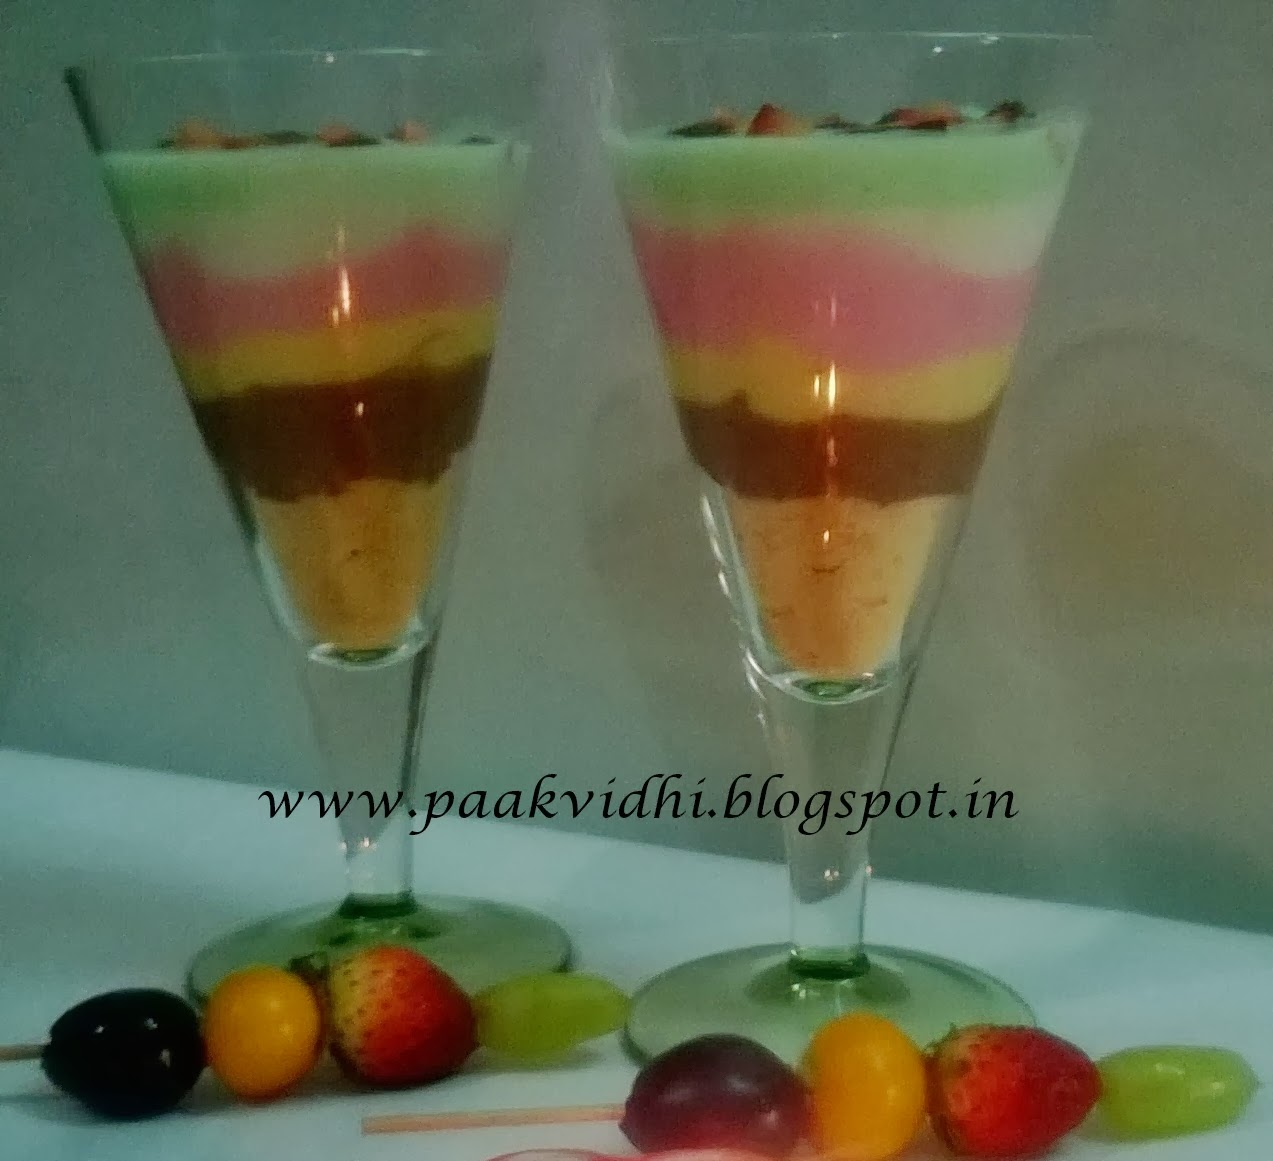 http://paakvidhi.blogspot.in/2014/02/five-story-custard.html